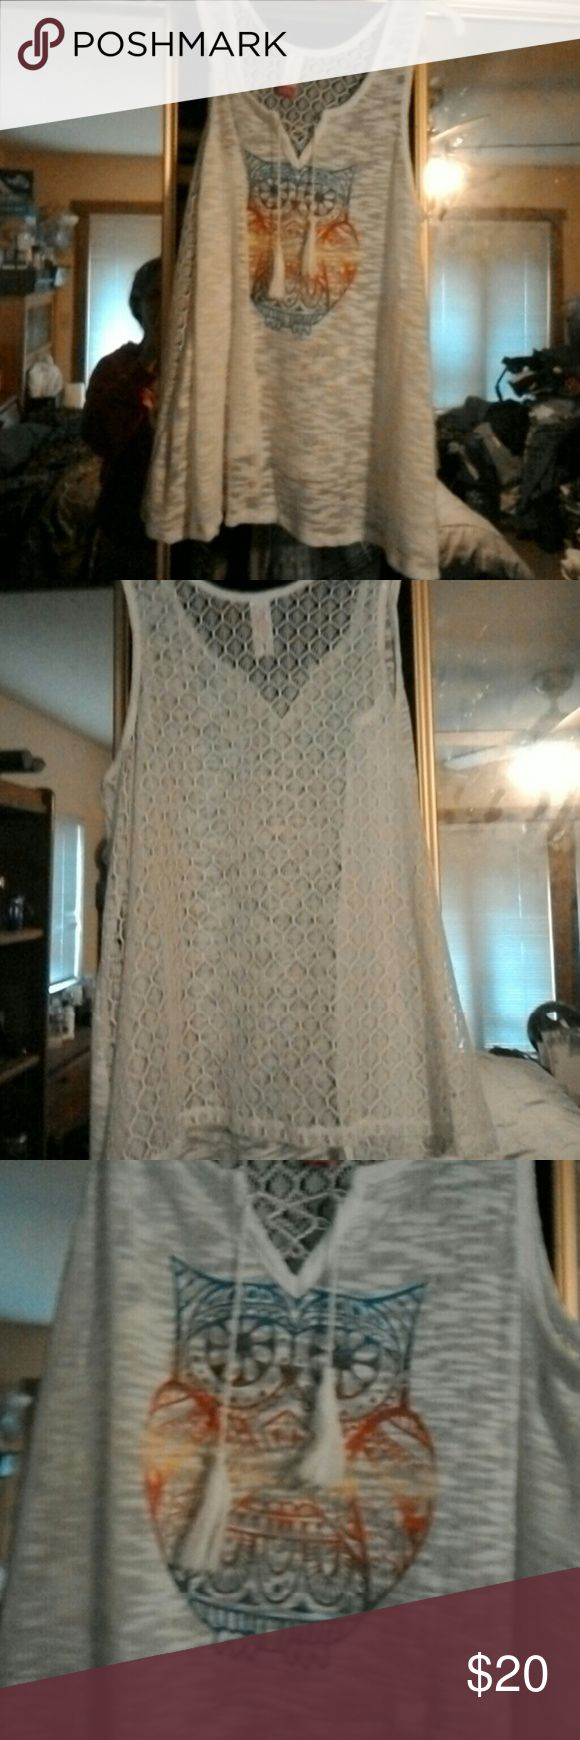 Lace tank top Brand new without tags Large Owl lace tank top No Boundaries Tops Tank Tops